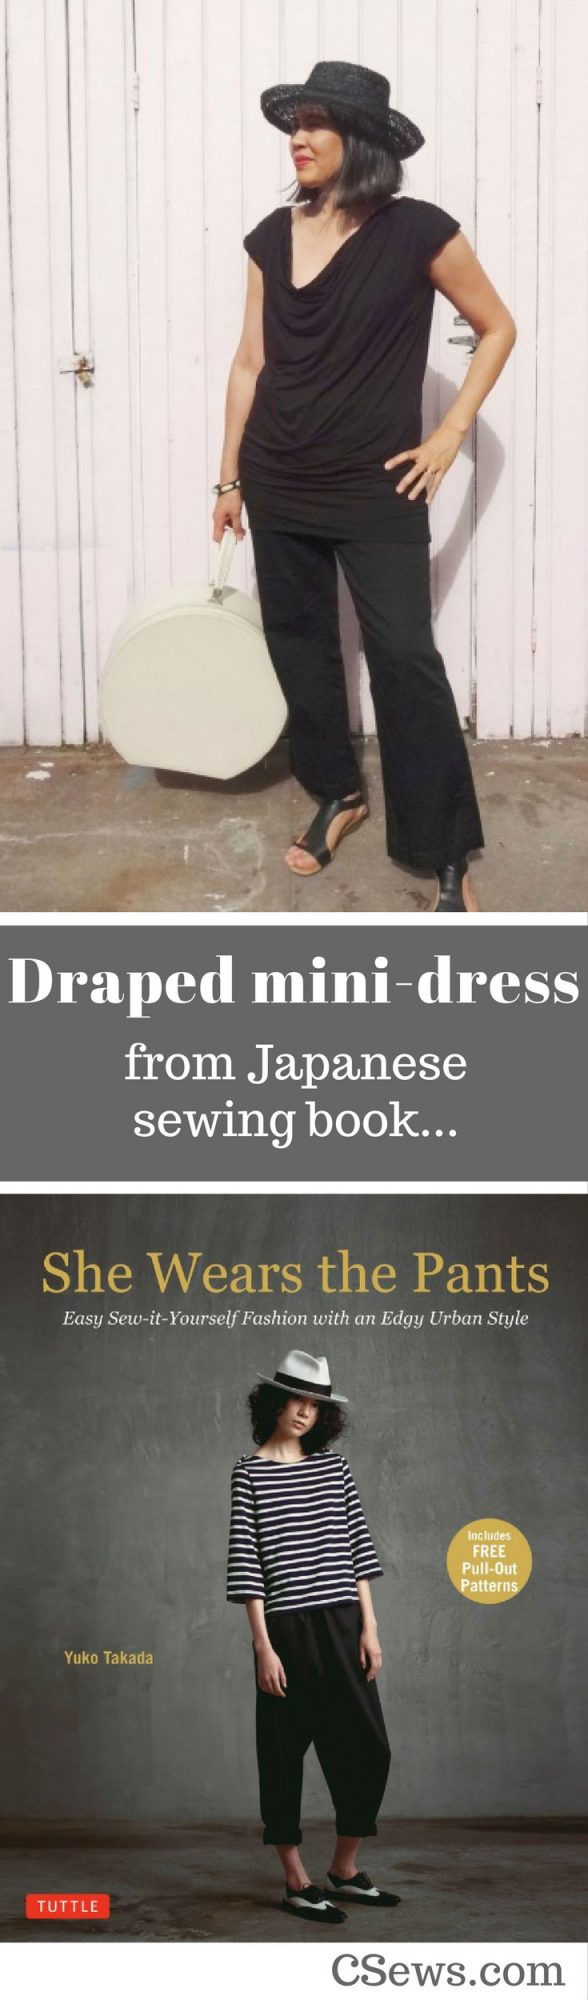 Draped mini-dress from Japanese sewing book She Wears the Pants